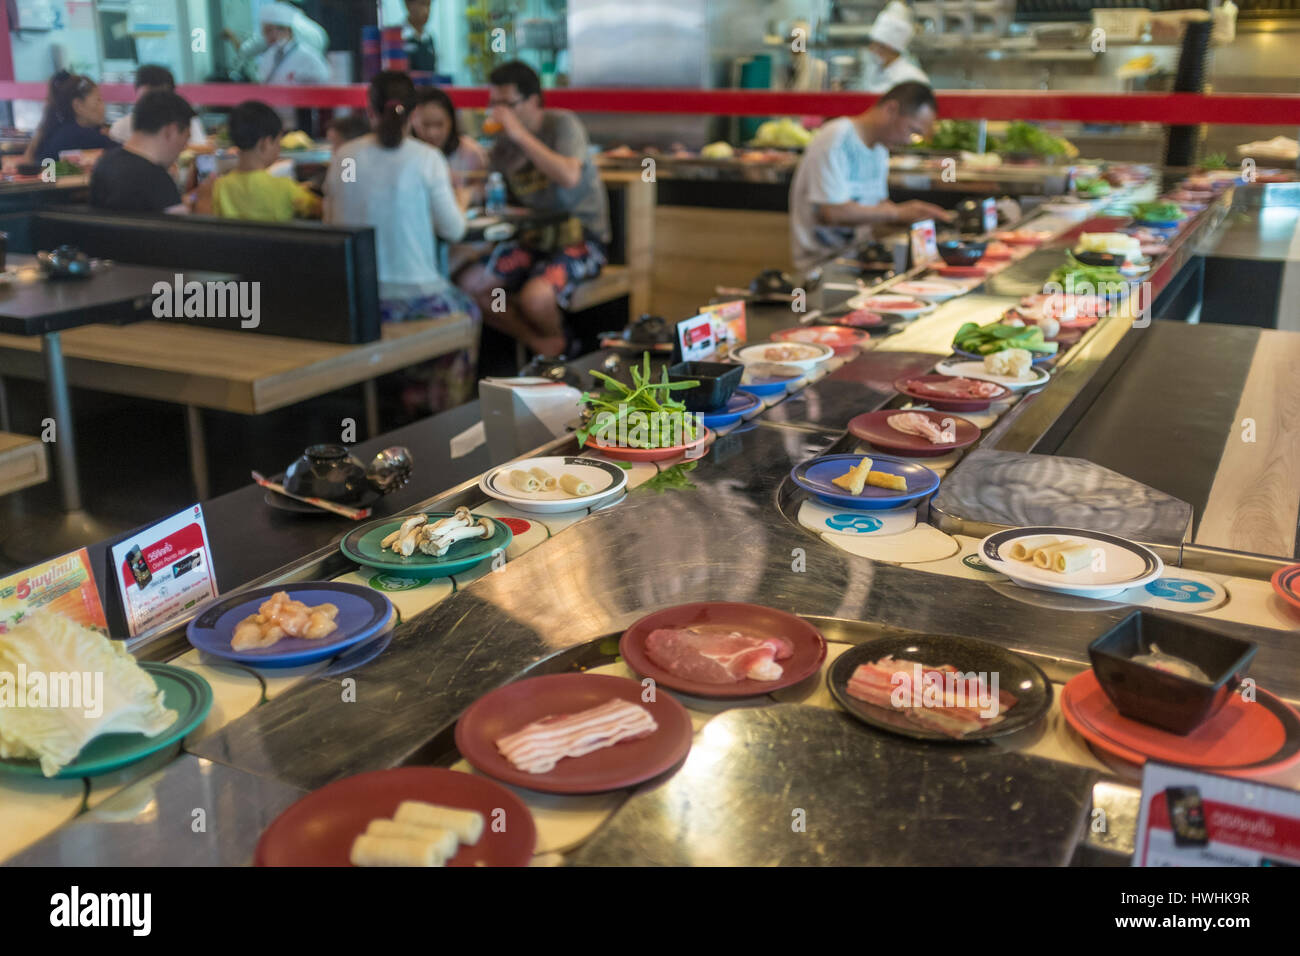 A conveyor belt sushi restaurant in Patong, Phuket, Thailand. - Stock Image